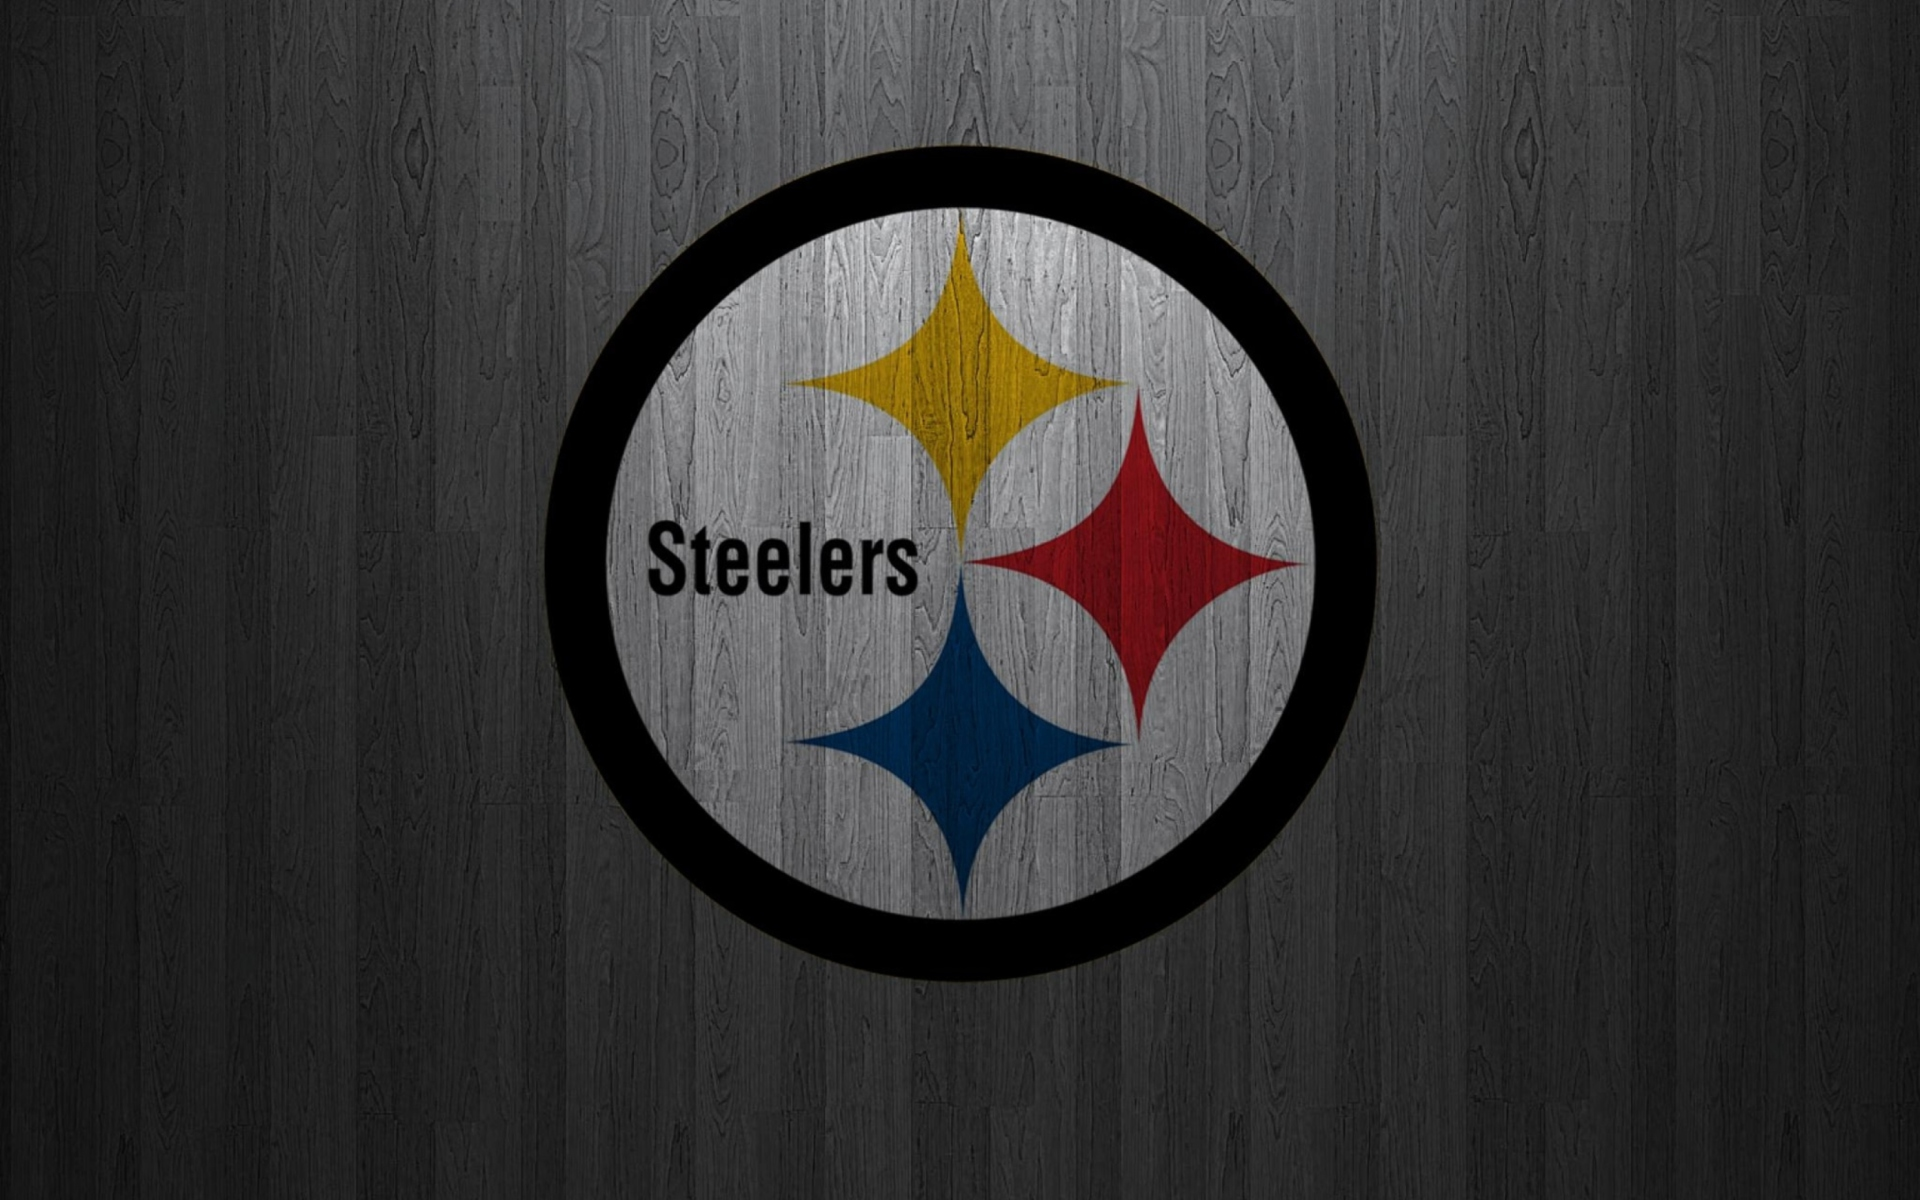 Get the latest Pittsburgh Steelers rumors news schedule and updates from Steelers Wire the best Pittsburgh Steelers blog available